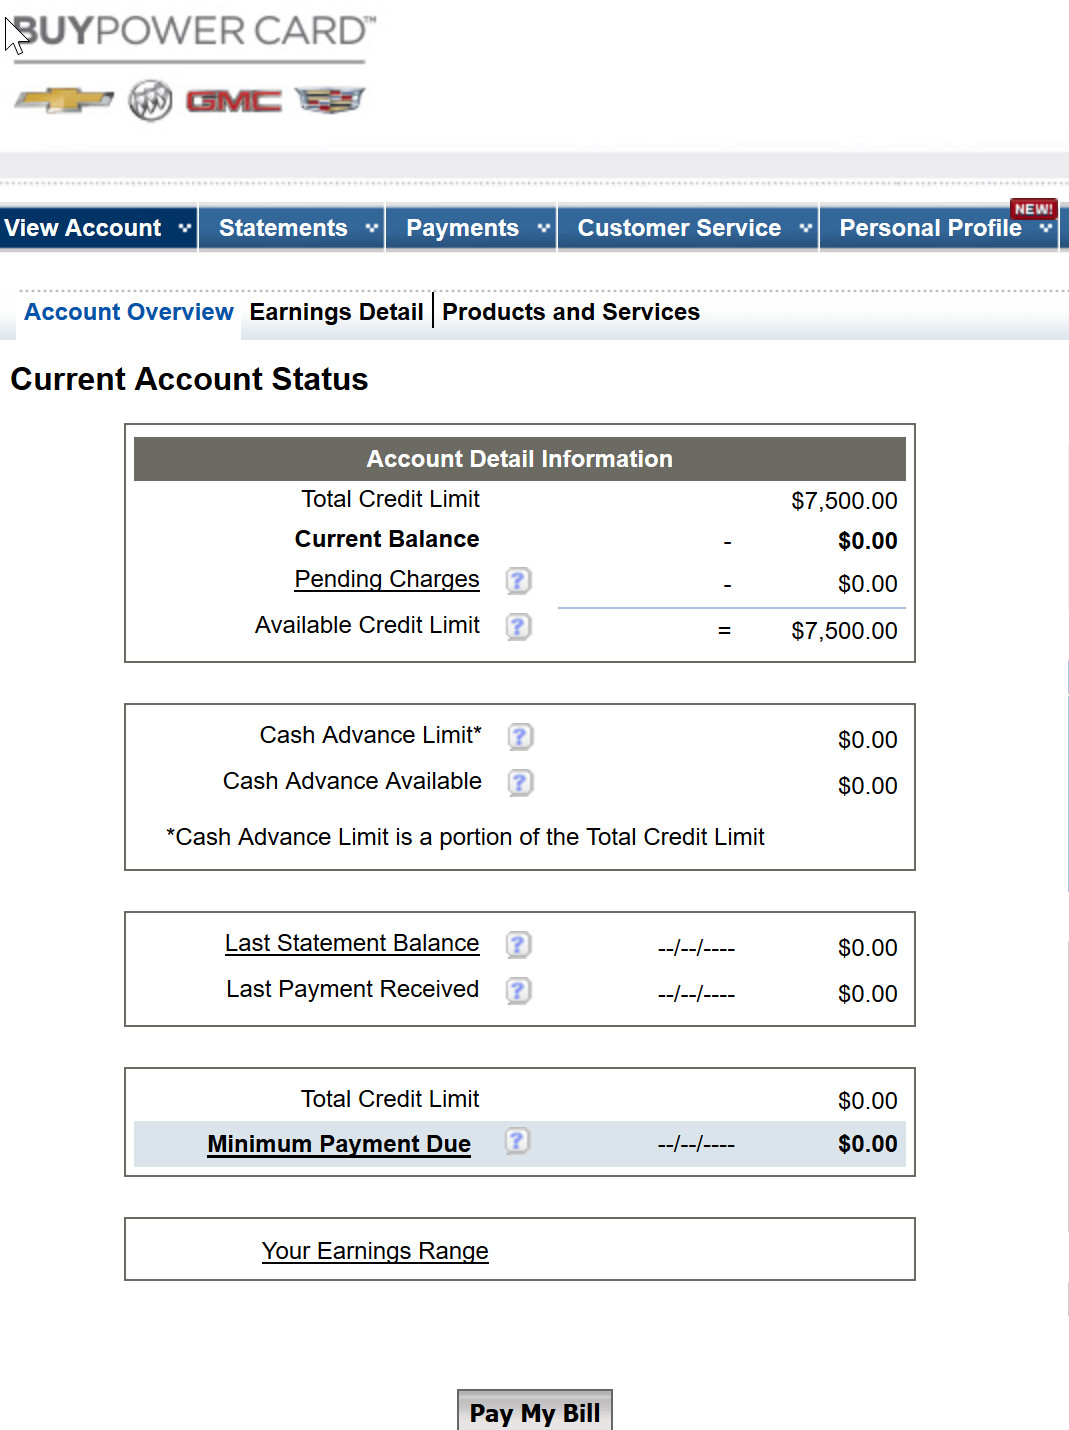 Capital One GM BuyPower Approval - myFICO® Forums - 4571919